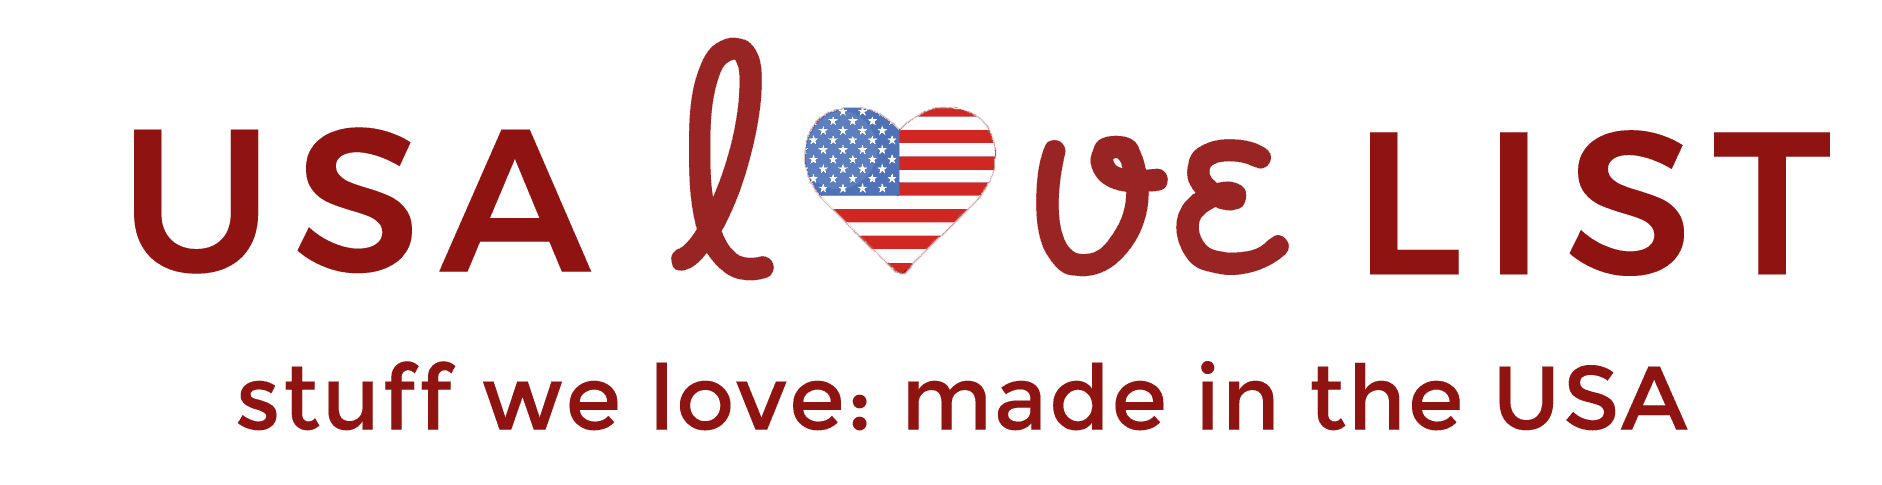 Hark Gardena American Made Shoes The Ultimate Source List Usa Love List